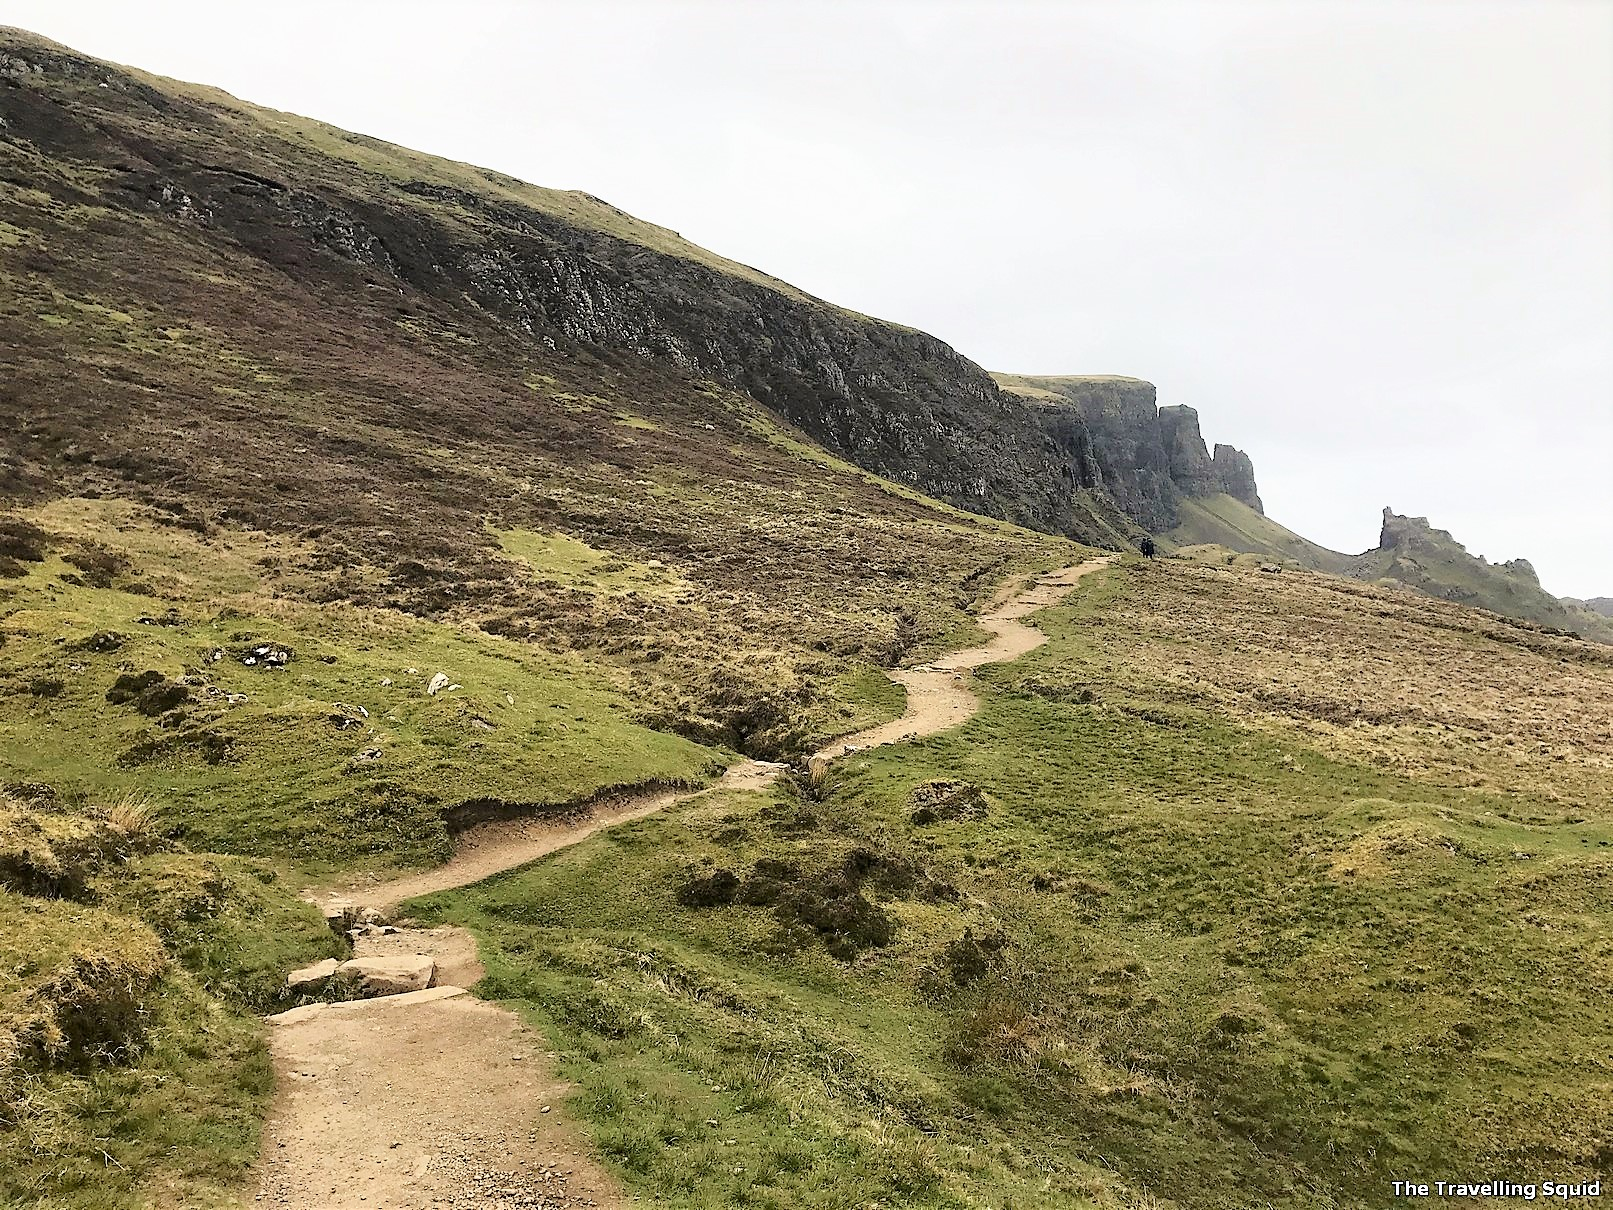 Quiraing Hiking Trail in Isle of Skye